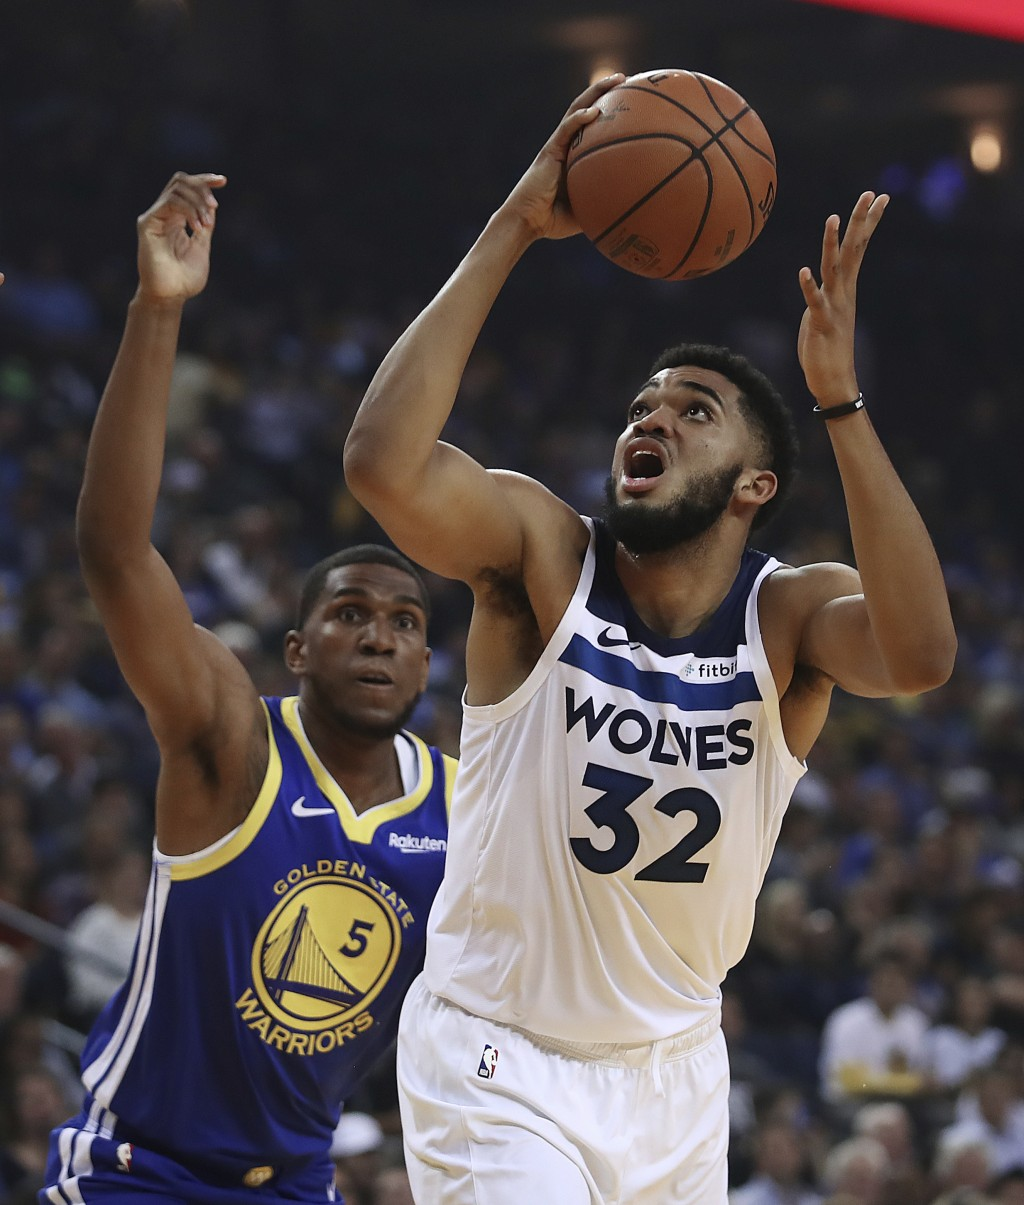 Minnesota Timberwolves' Karl-Anthony Towns, right, looks for a shot next to Golden State Warriors' Kevon Looney (5) during the first half of an NBA ba